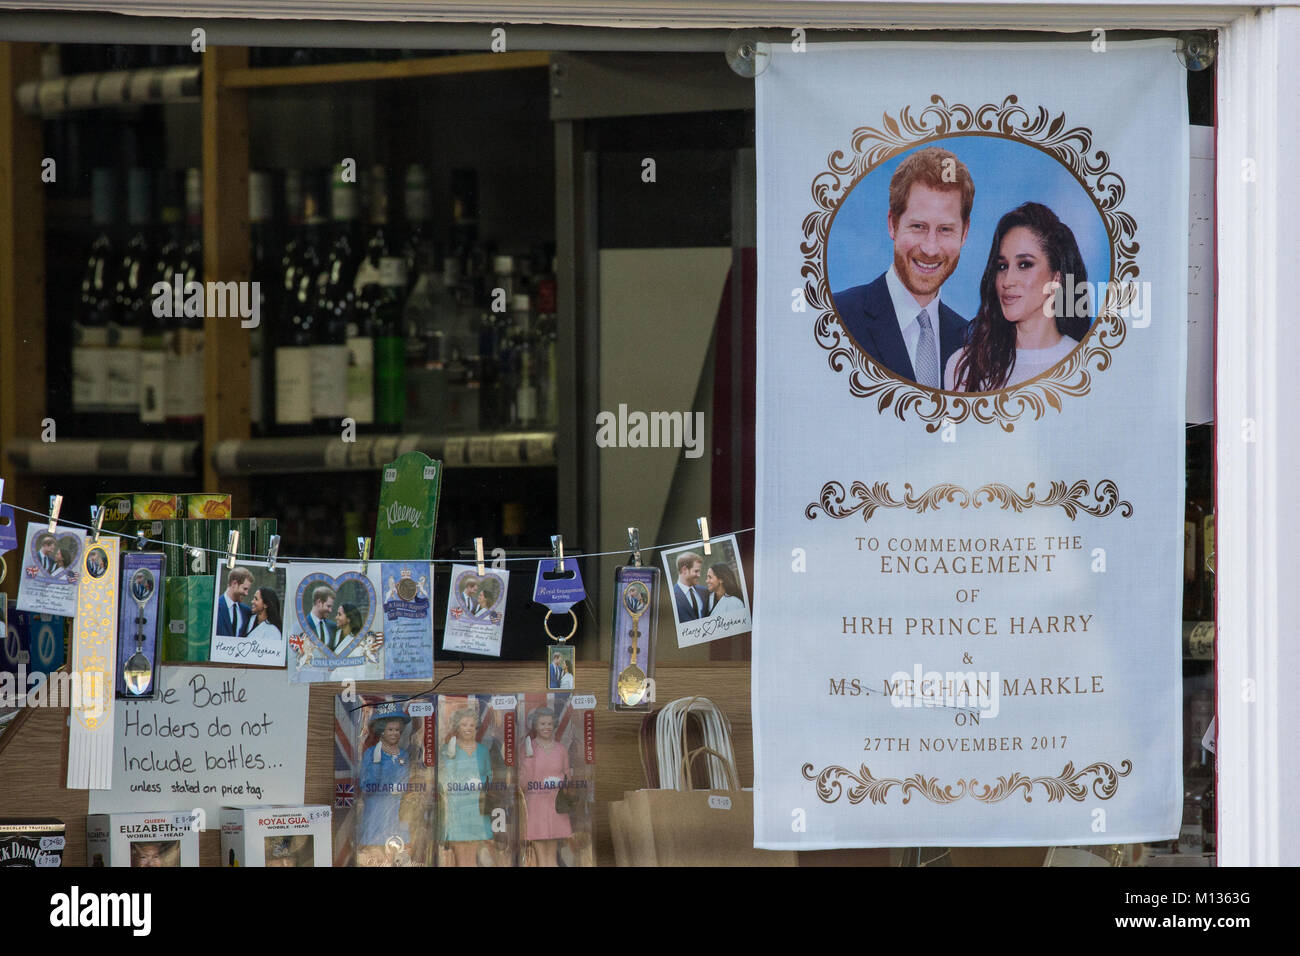 Windsor, UK. 25th January, 2018. Souvenirs featuring the image of Prince Harry and Meghan Markle in the window of Stock Photo